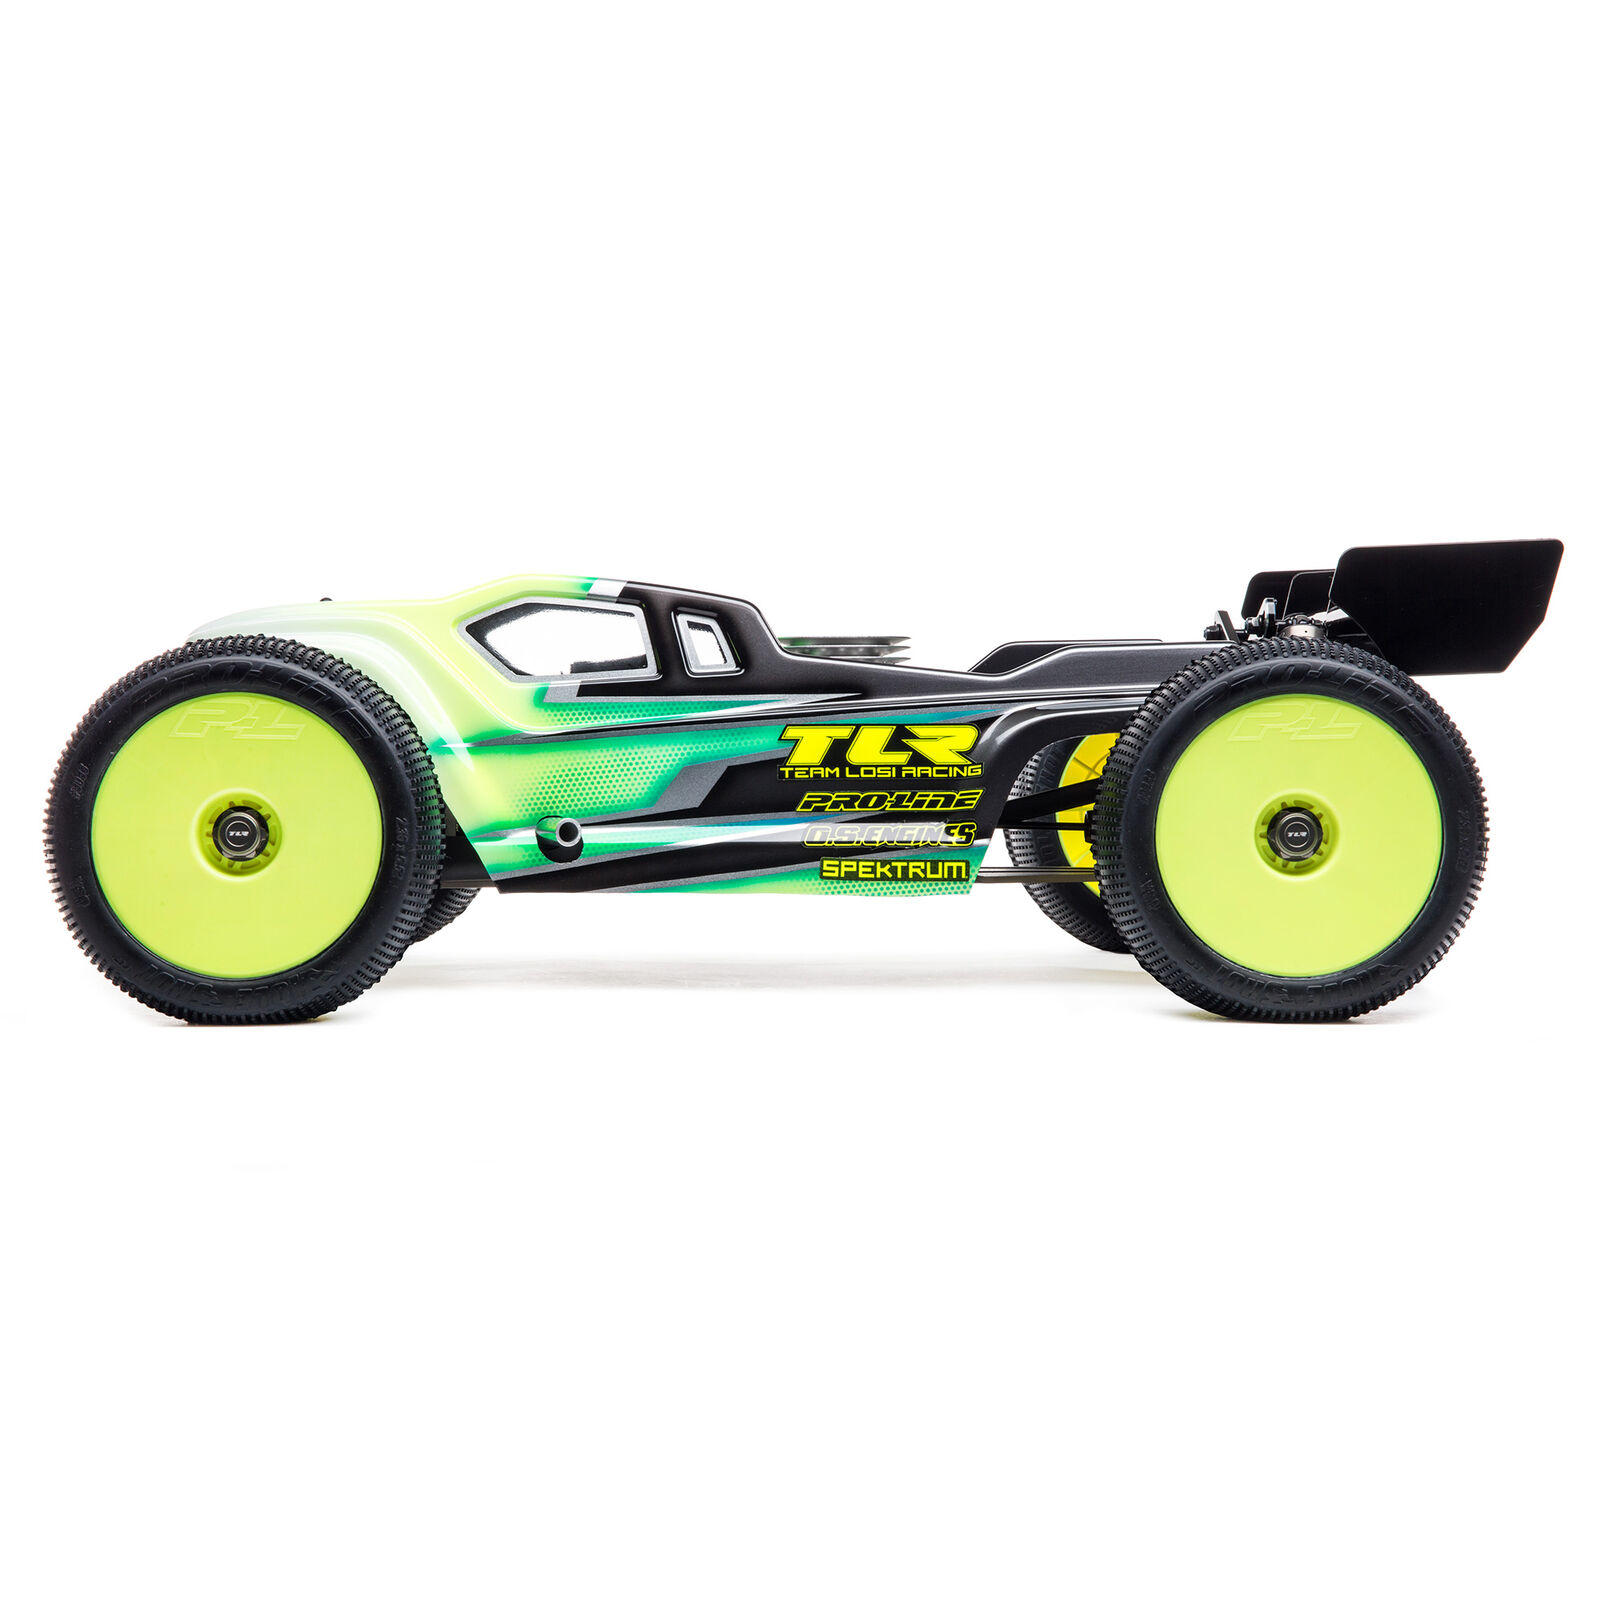 1/8 8IGHT-XT/XTE 4WD Nitro/Electric Truggy Race Kit